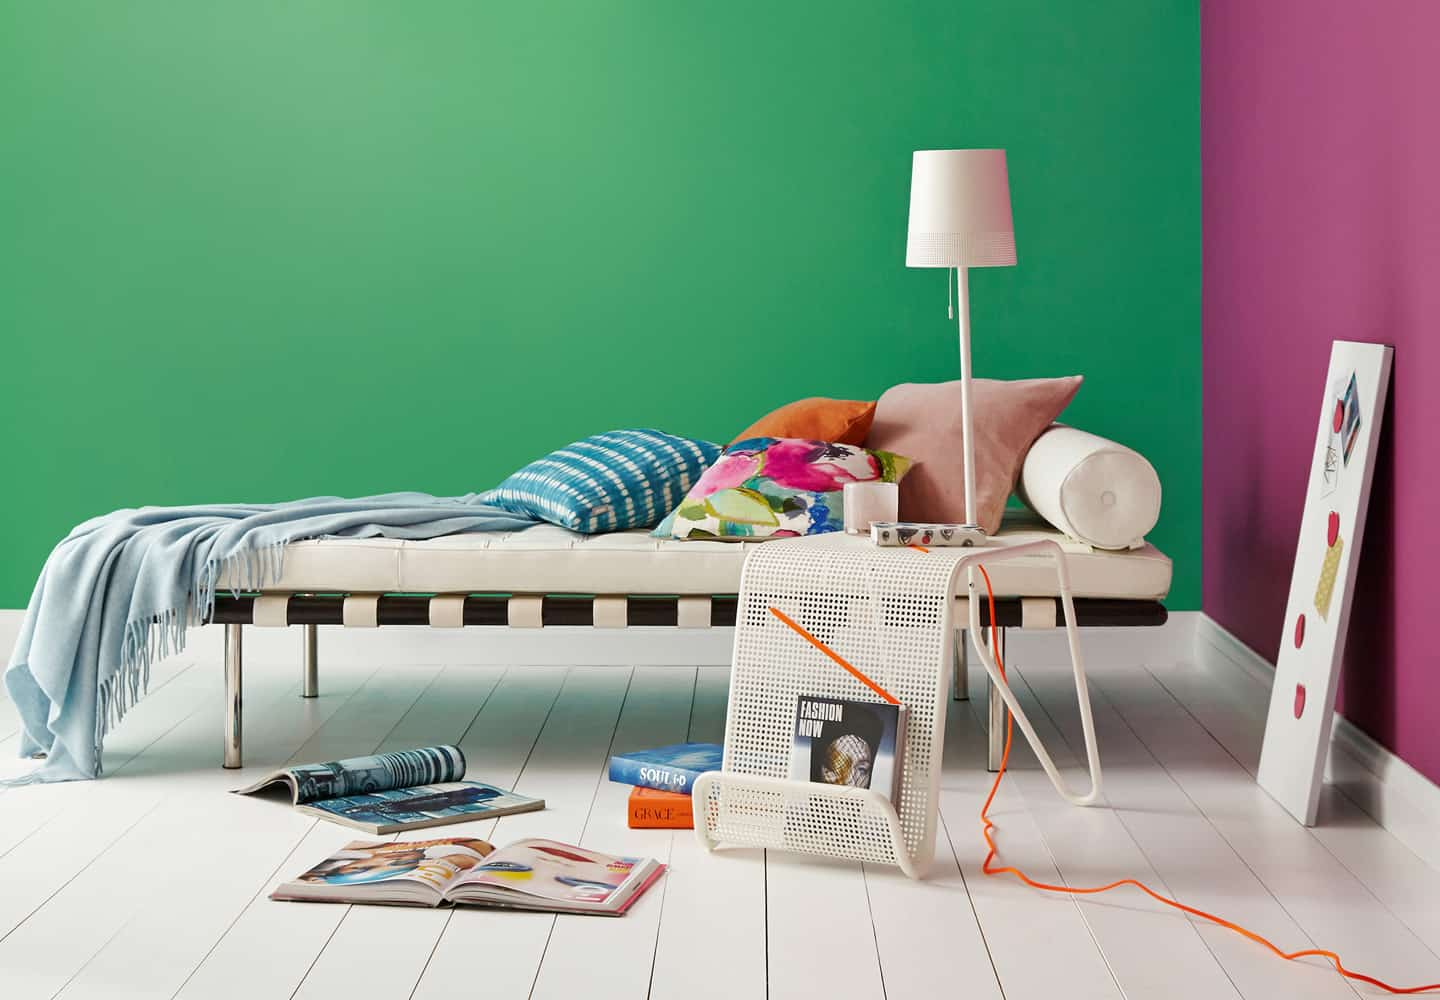 Green Sits So Well With Warm Pinks And Other Vibrant Colours, Creating A  Fun And Fresh Space.